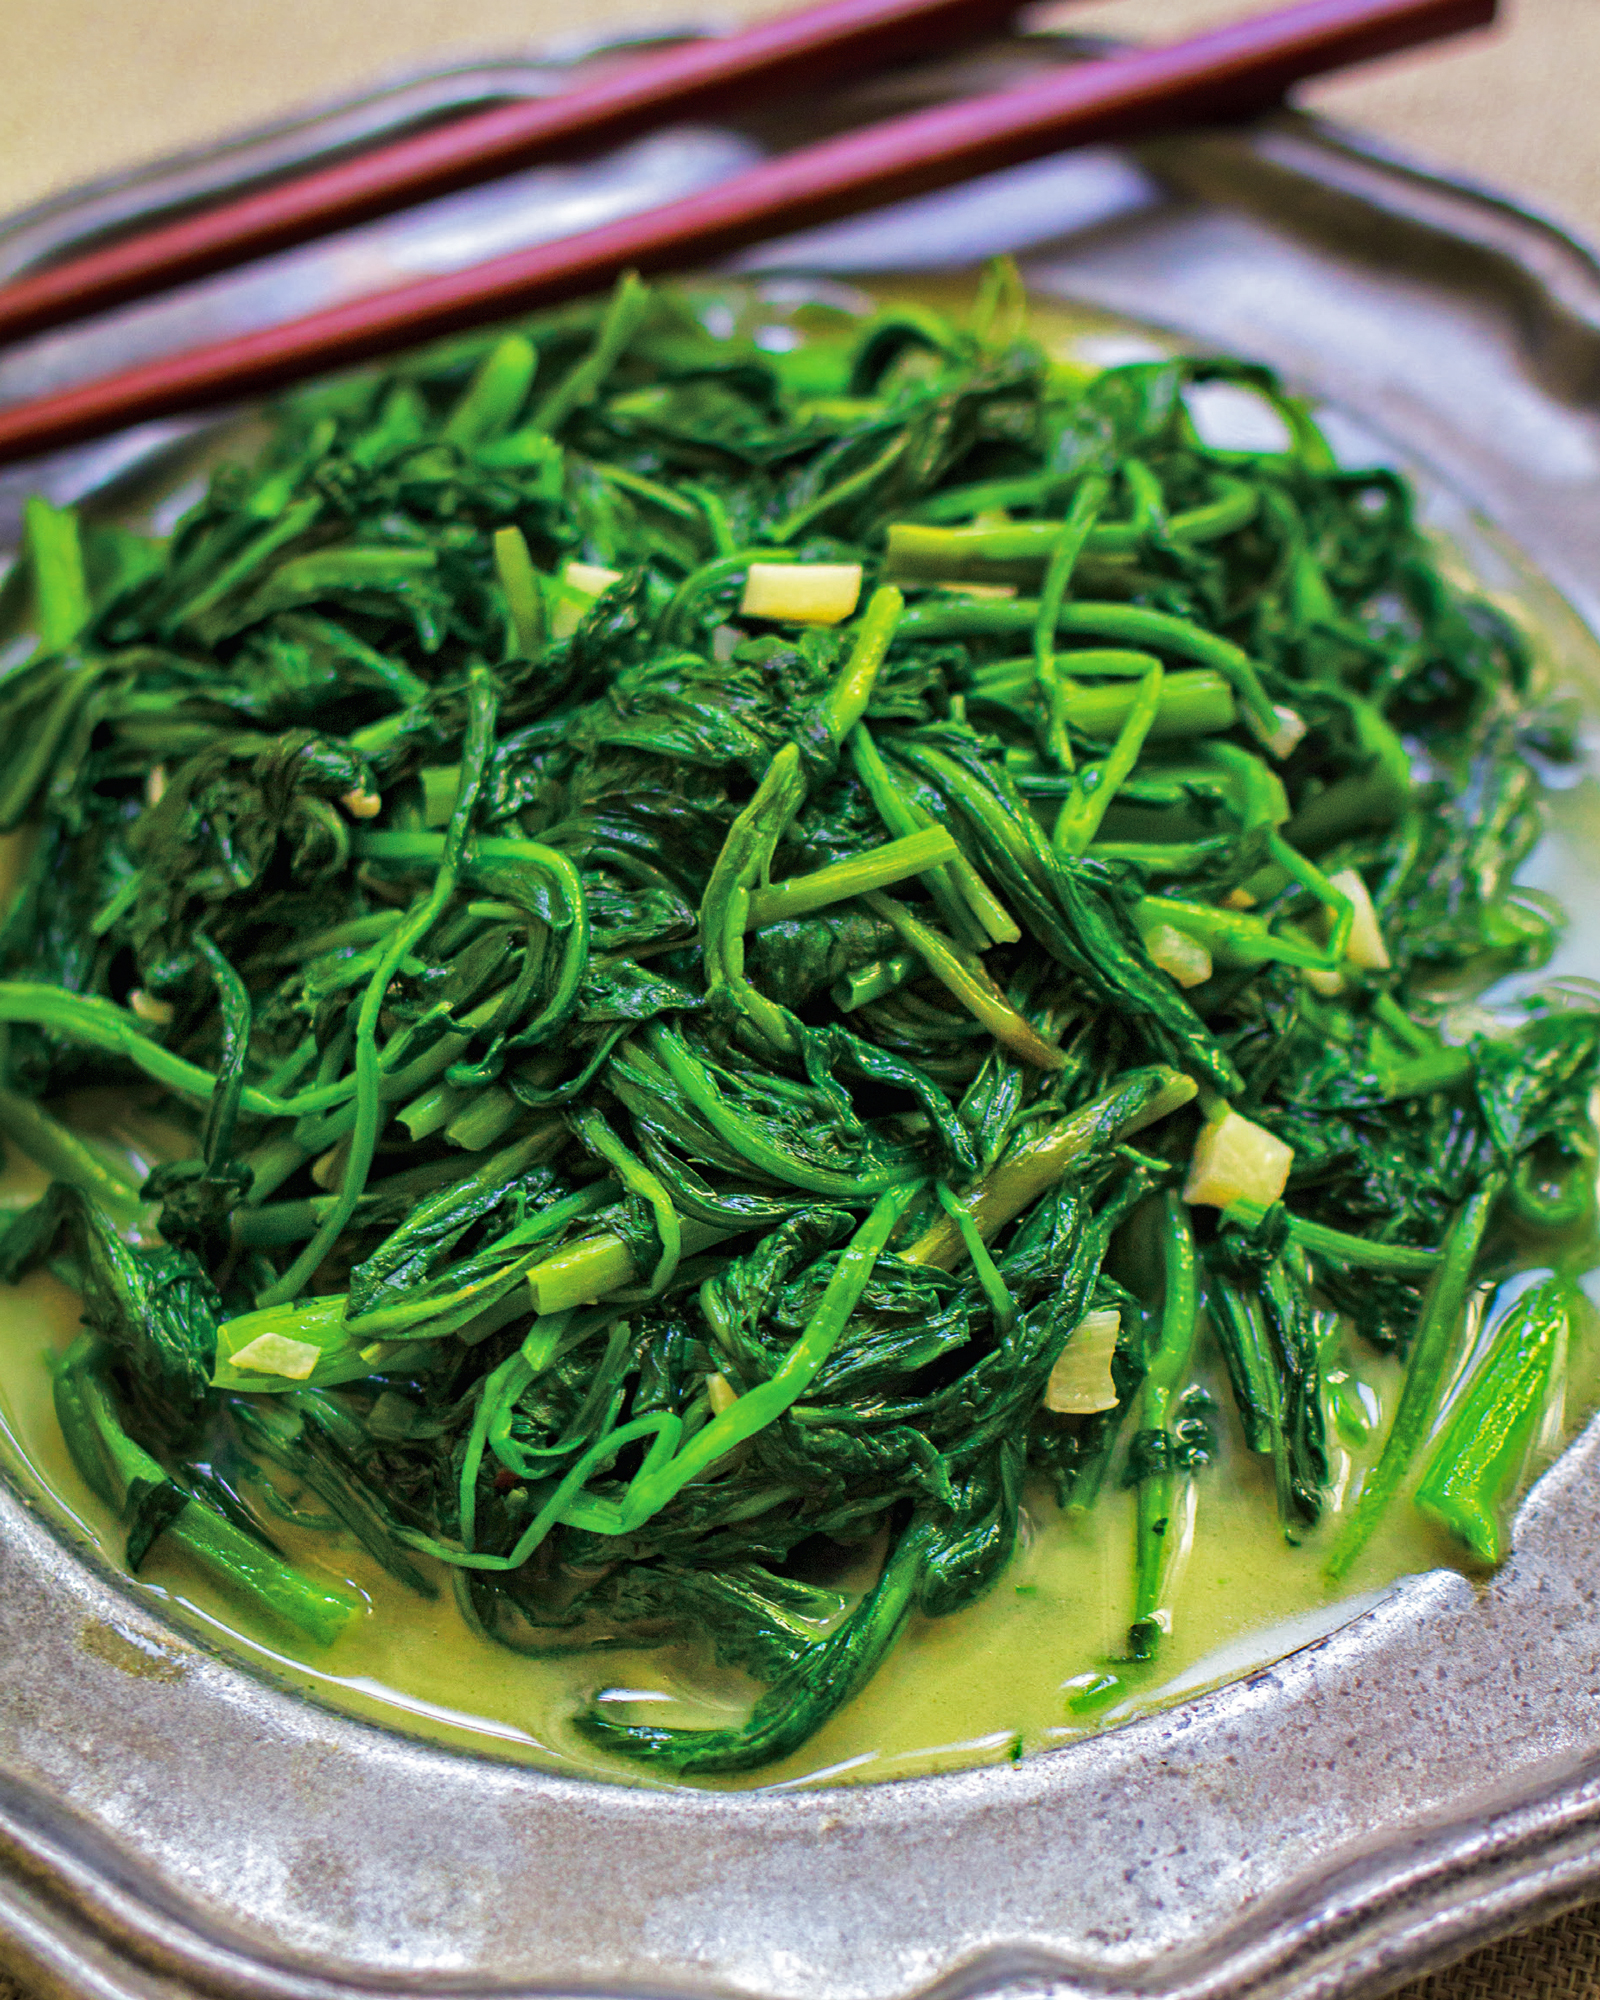 Fu Ru Kong Xin Cai (Sauteed Water Spinach with Fermented Tofu)